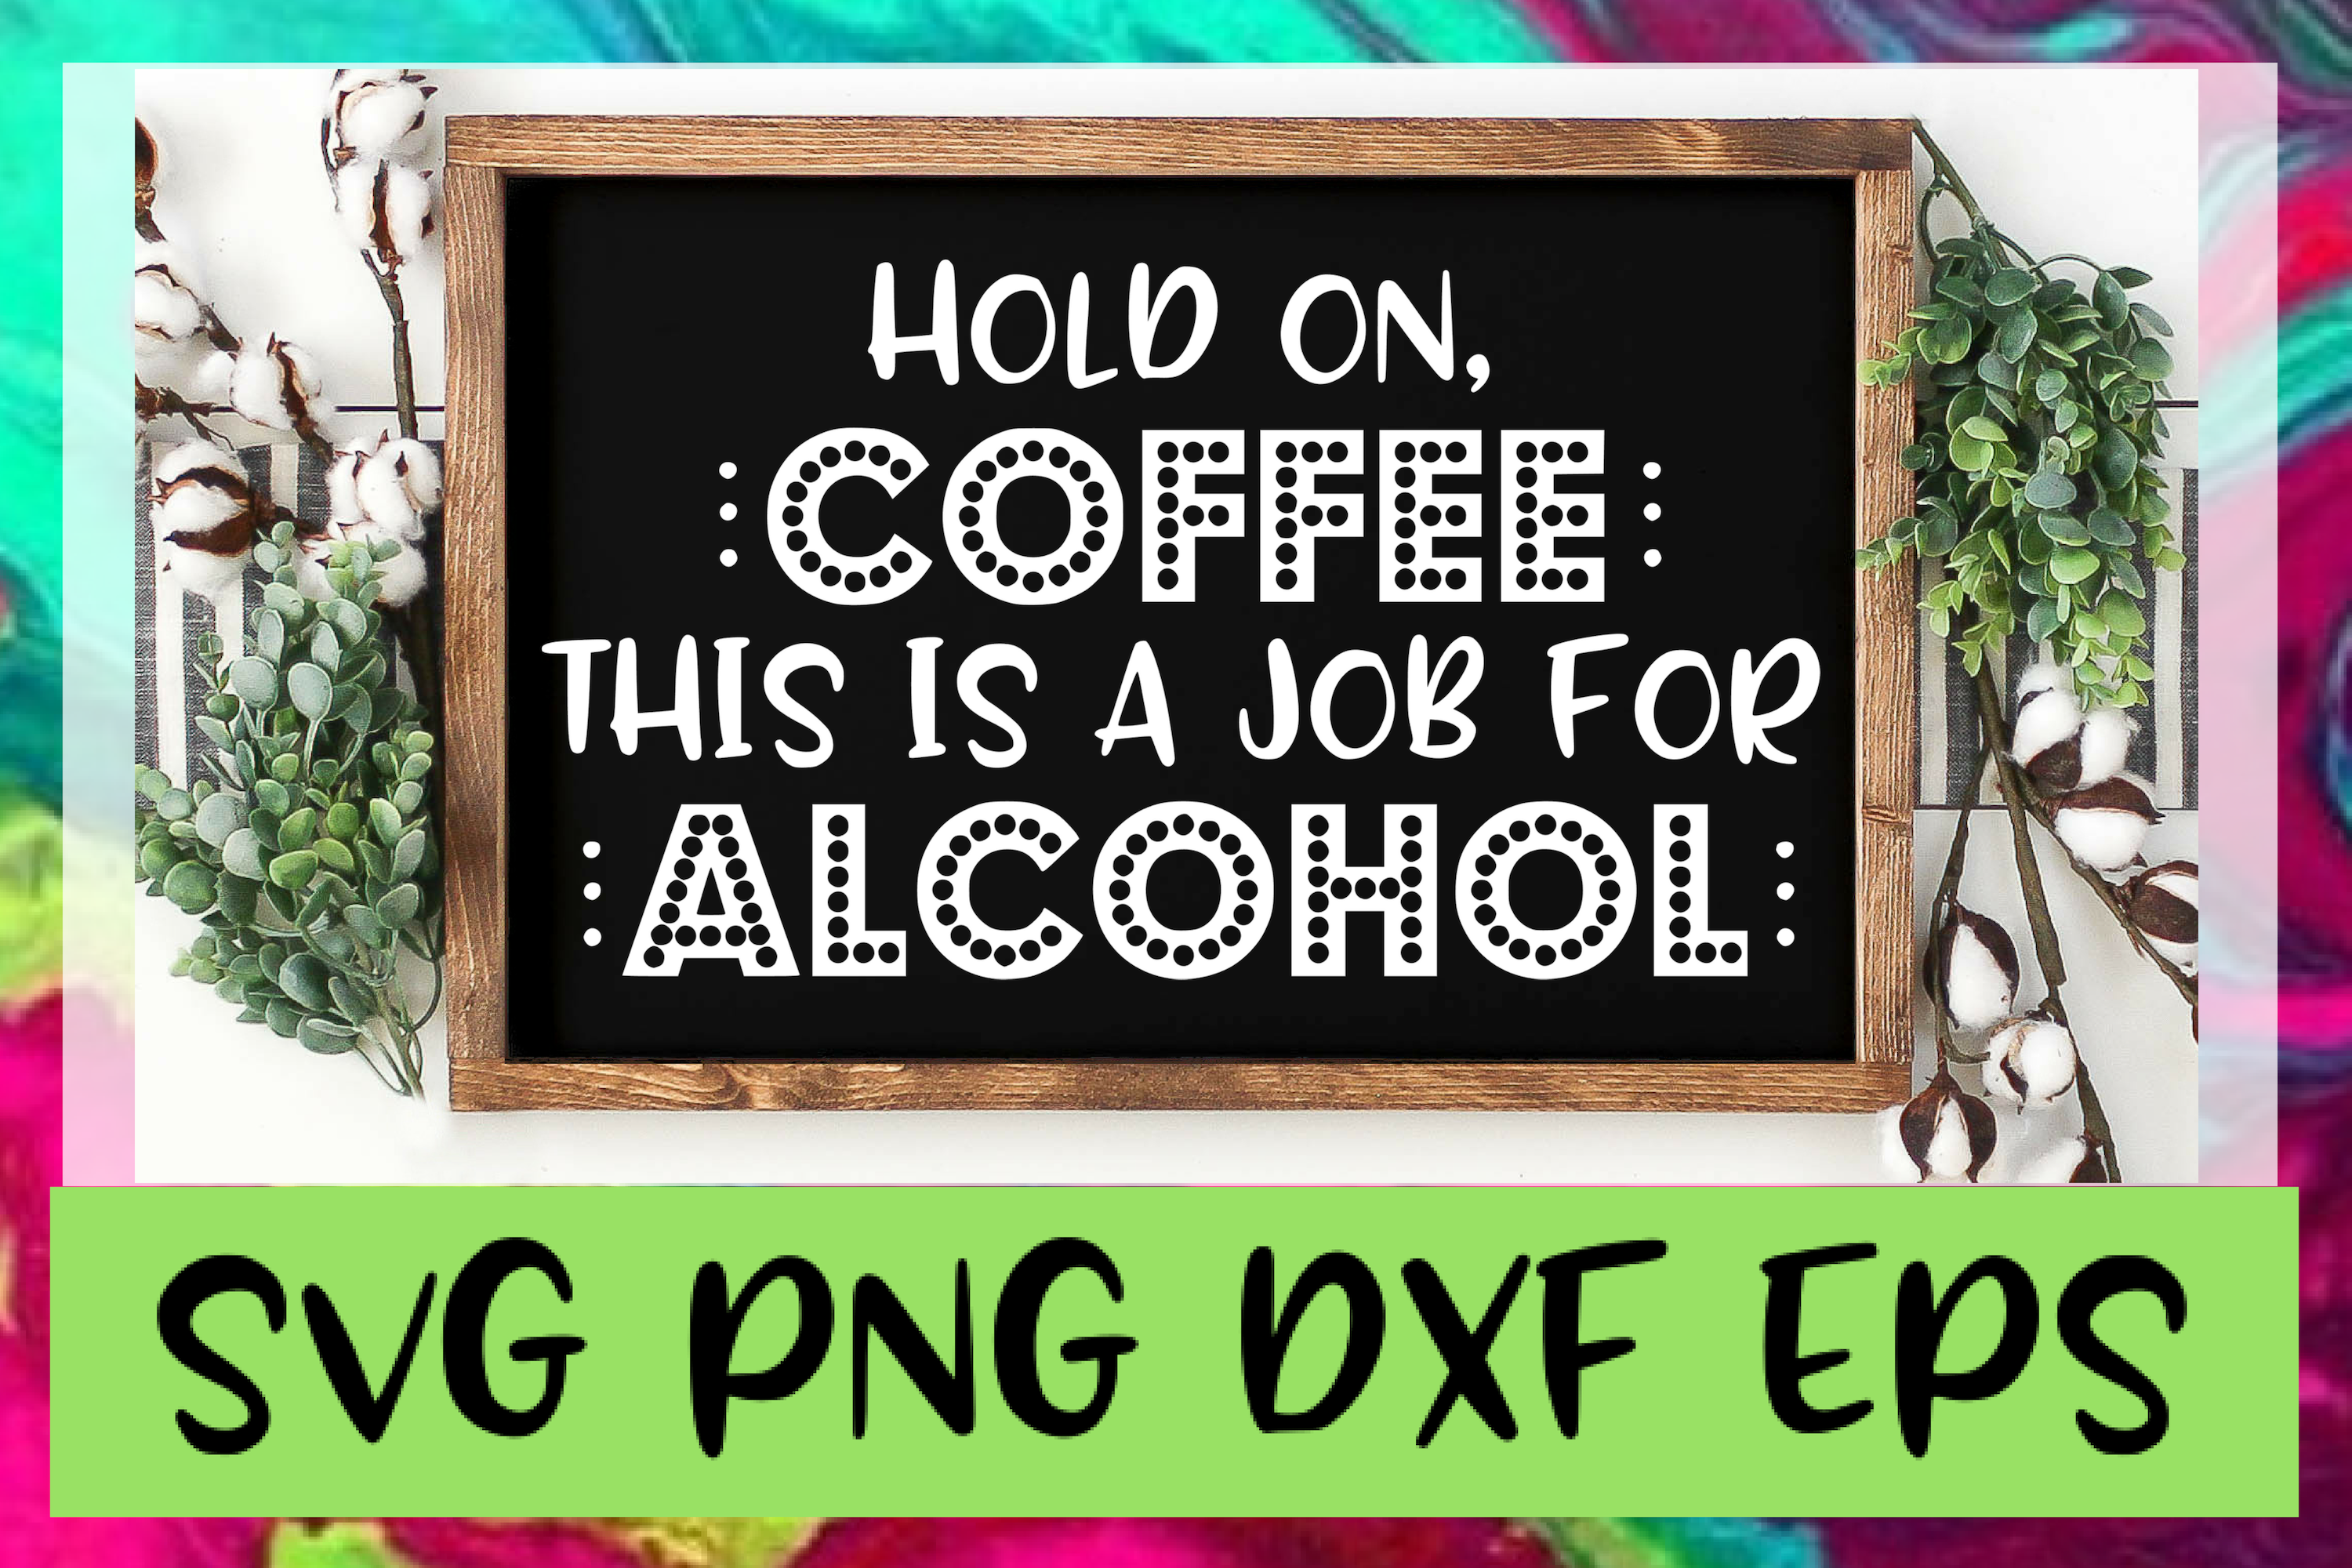 Coffee and Alcohol Quote SVG PNG DXF & EPS Design Files example image 1